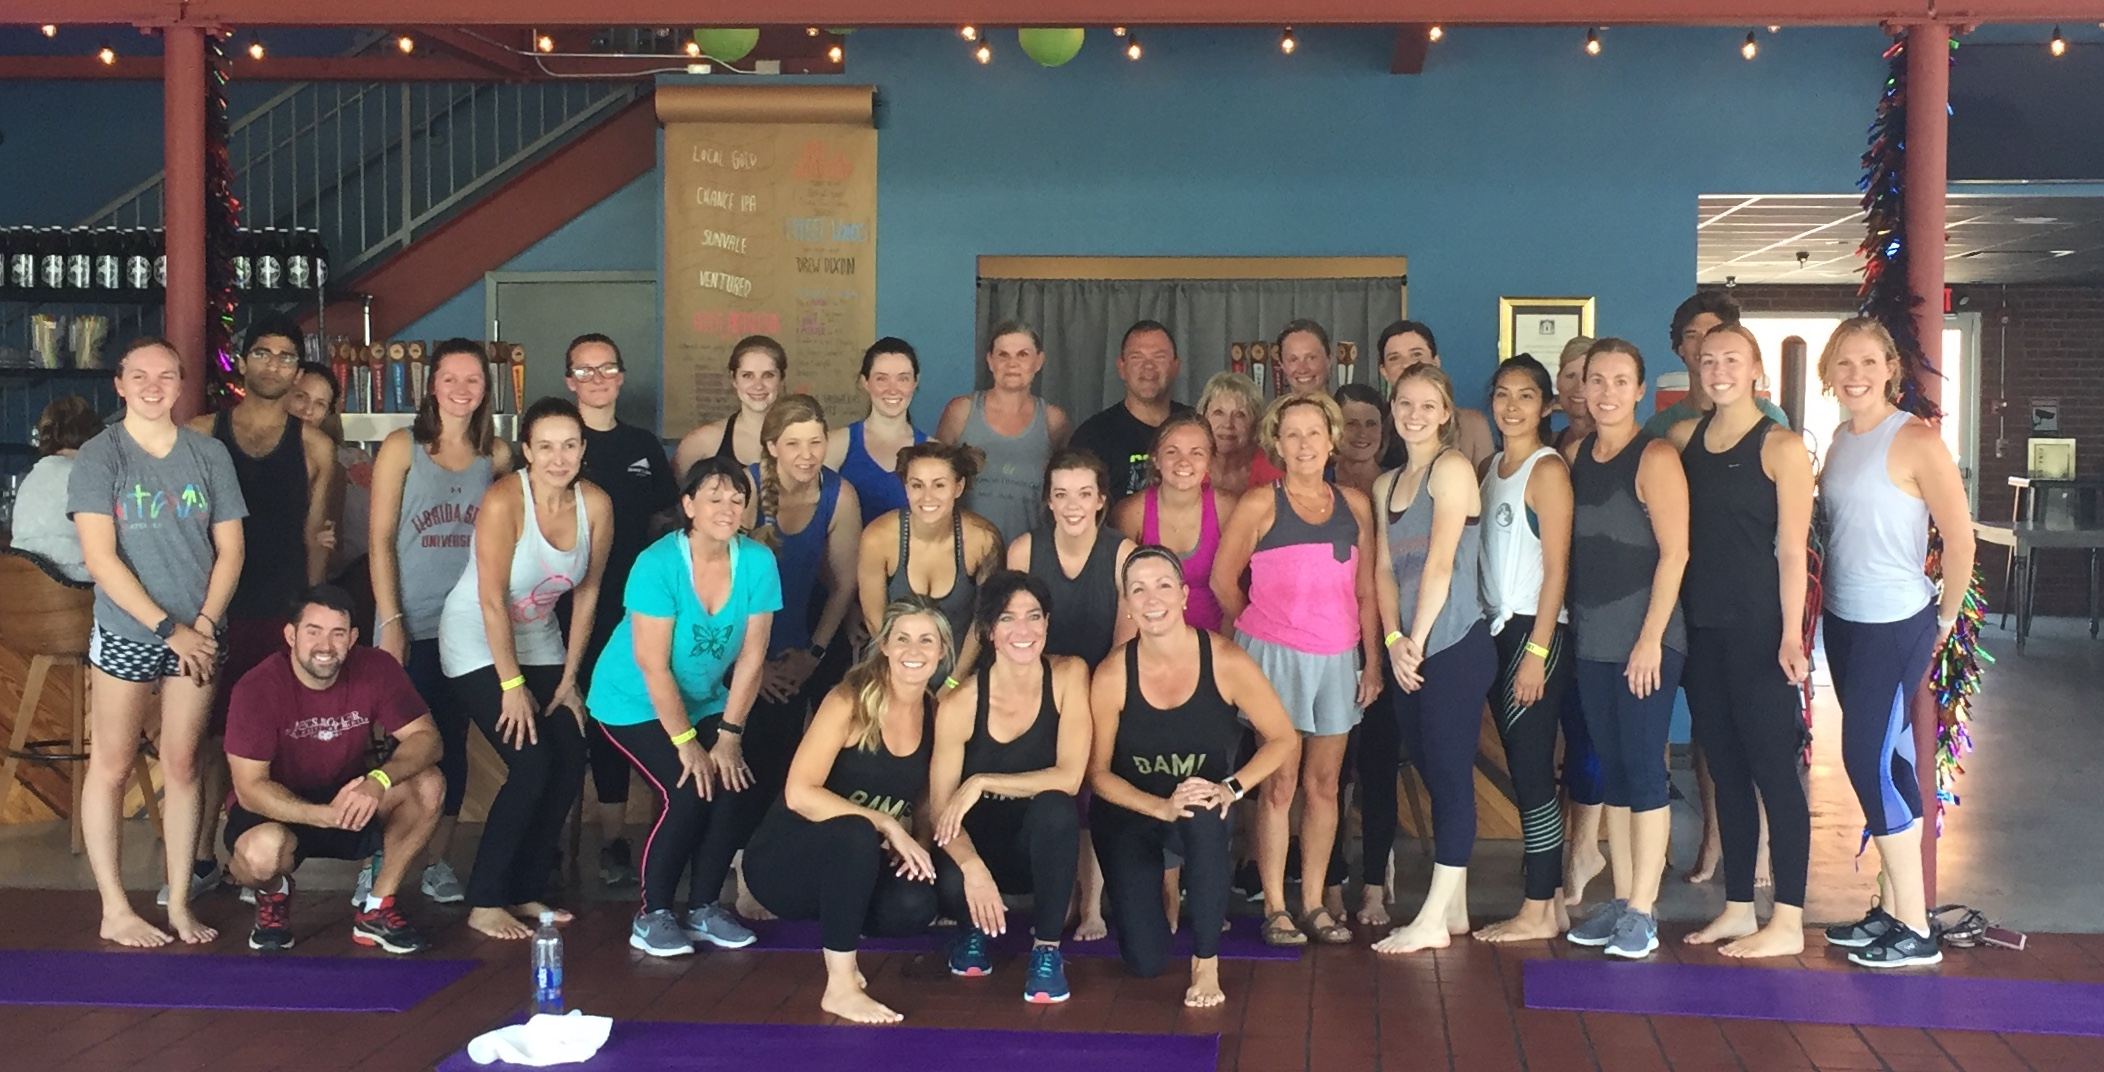 Thank you for attending PiYo + Beer on June 9th! So much energy, so much fun and so many smiling faces! Join us for Cardio Dance Fitness on June 23rd and keep the party going!